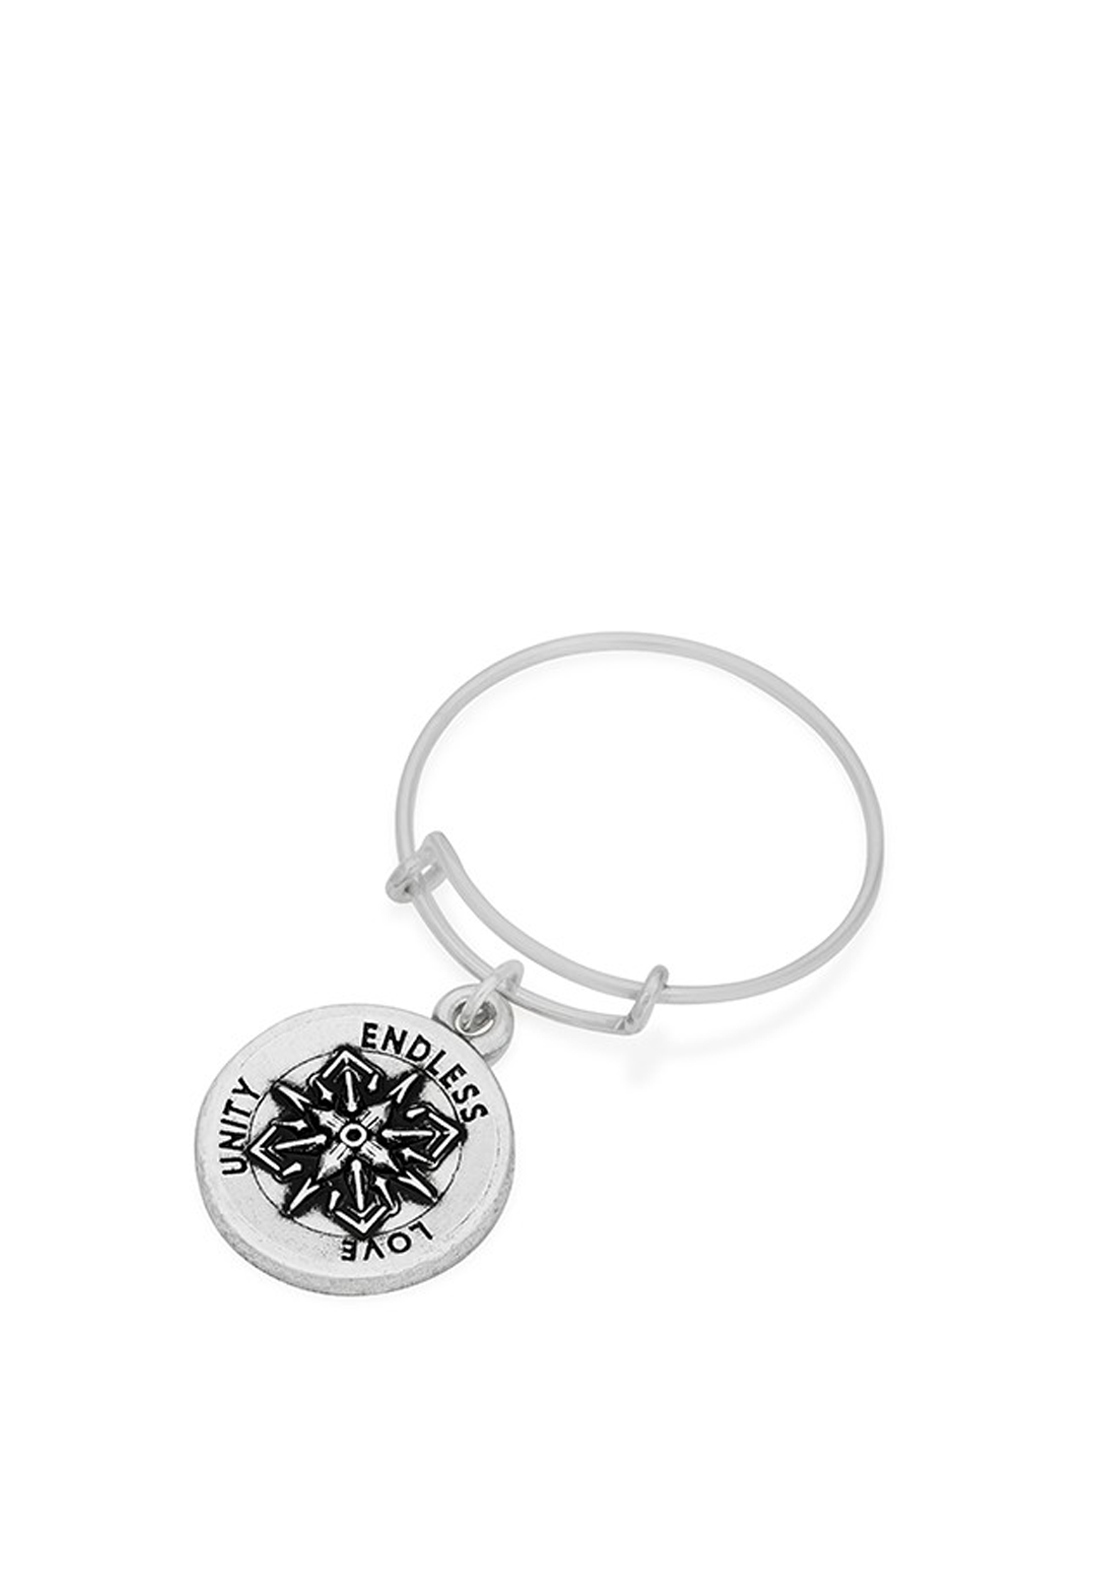 Alex and Ani Wire Healing Love Ring, Silver